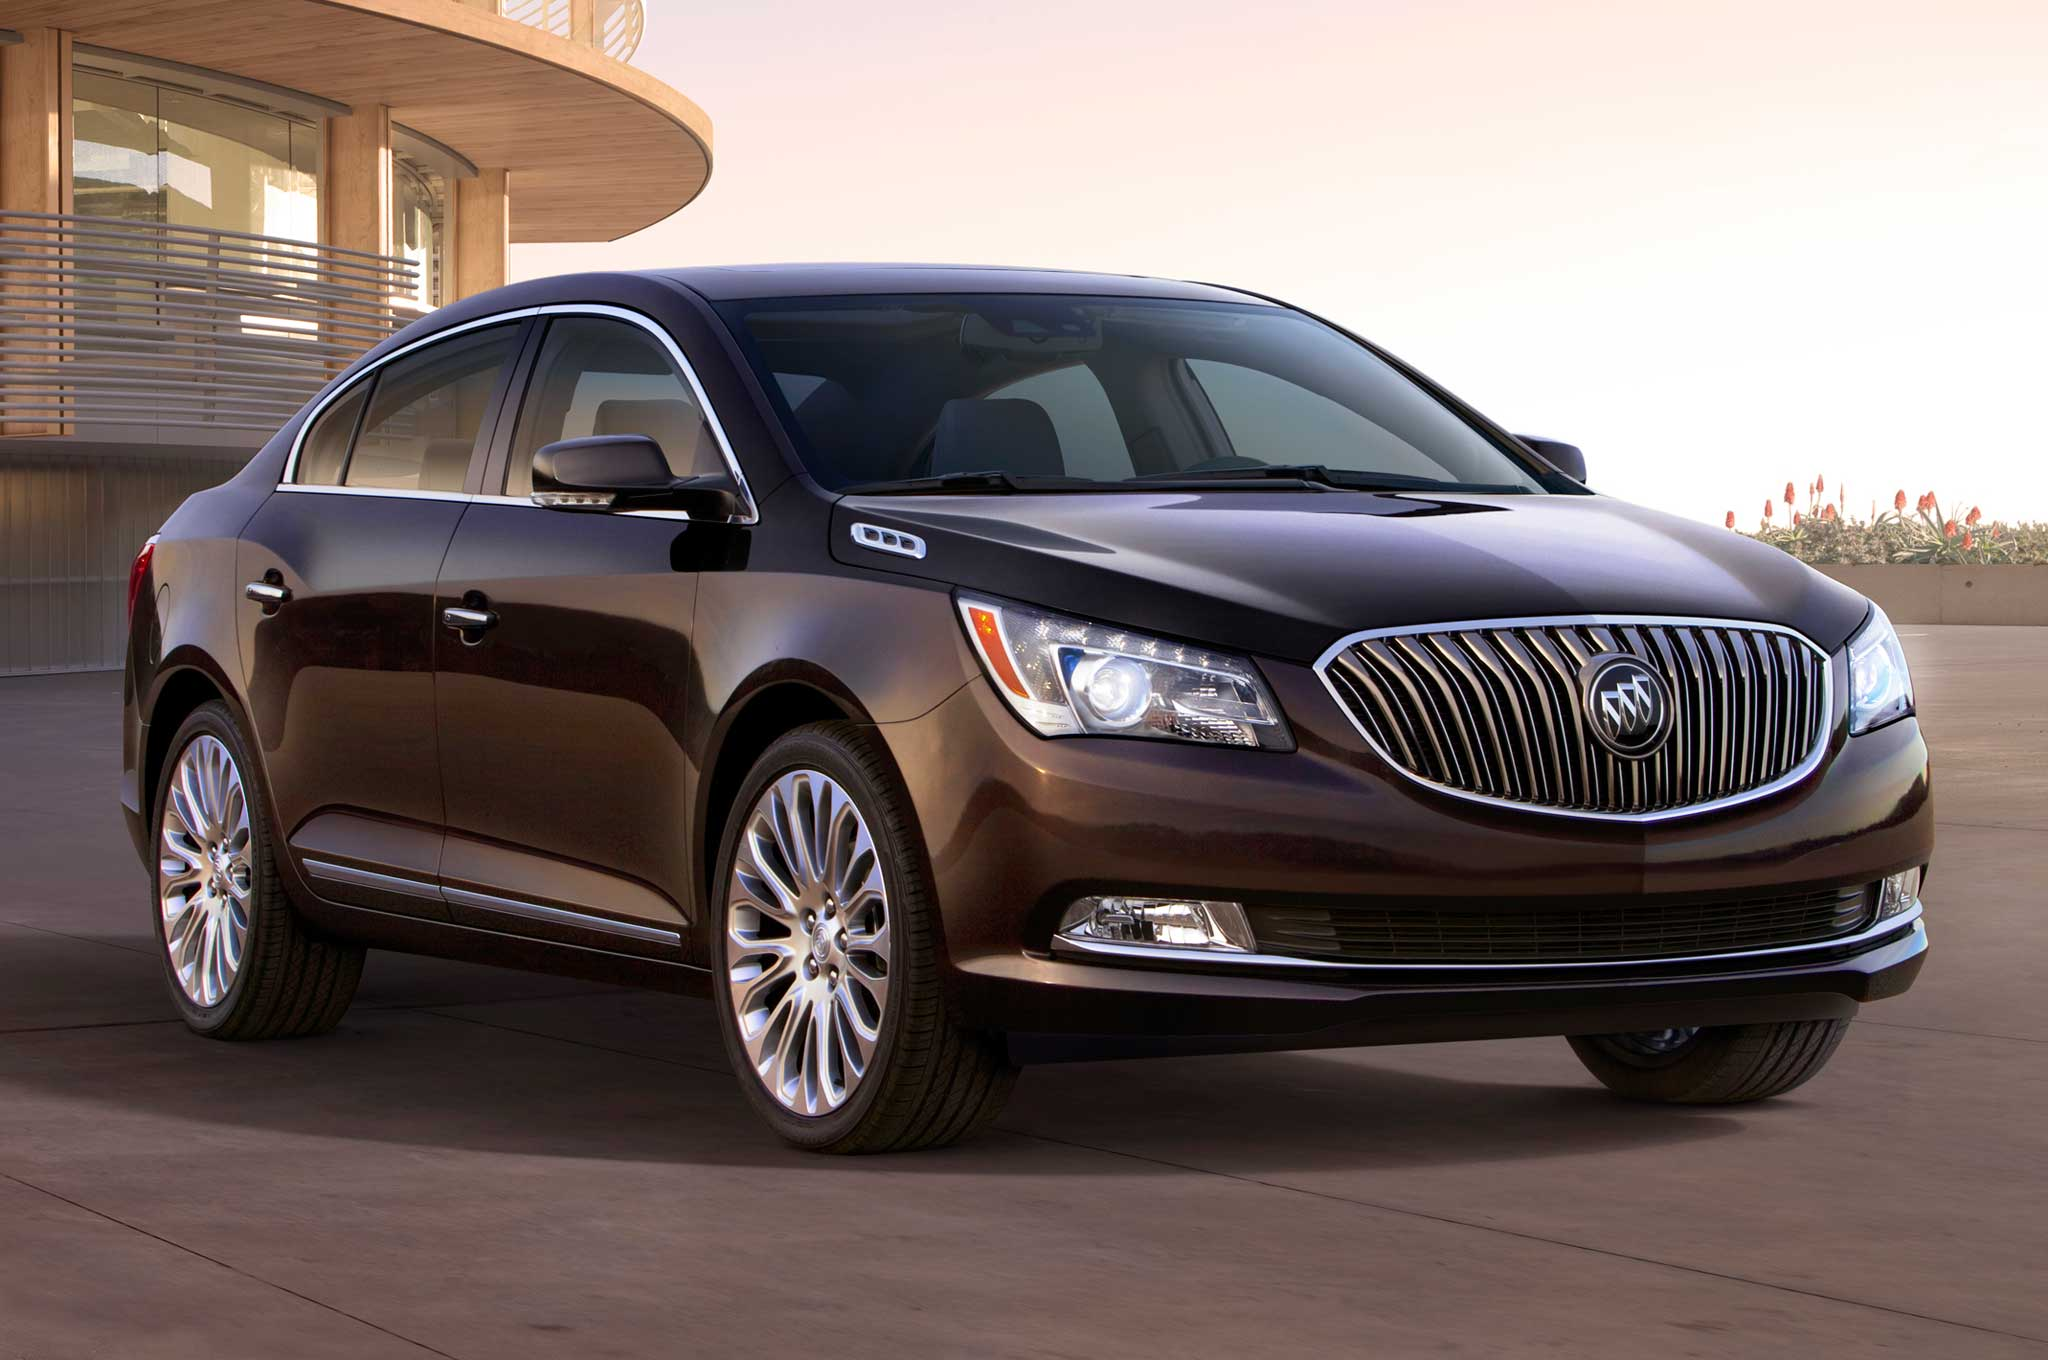 2014 Buick LaCrosse  Information and photos  ZombieDrive